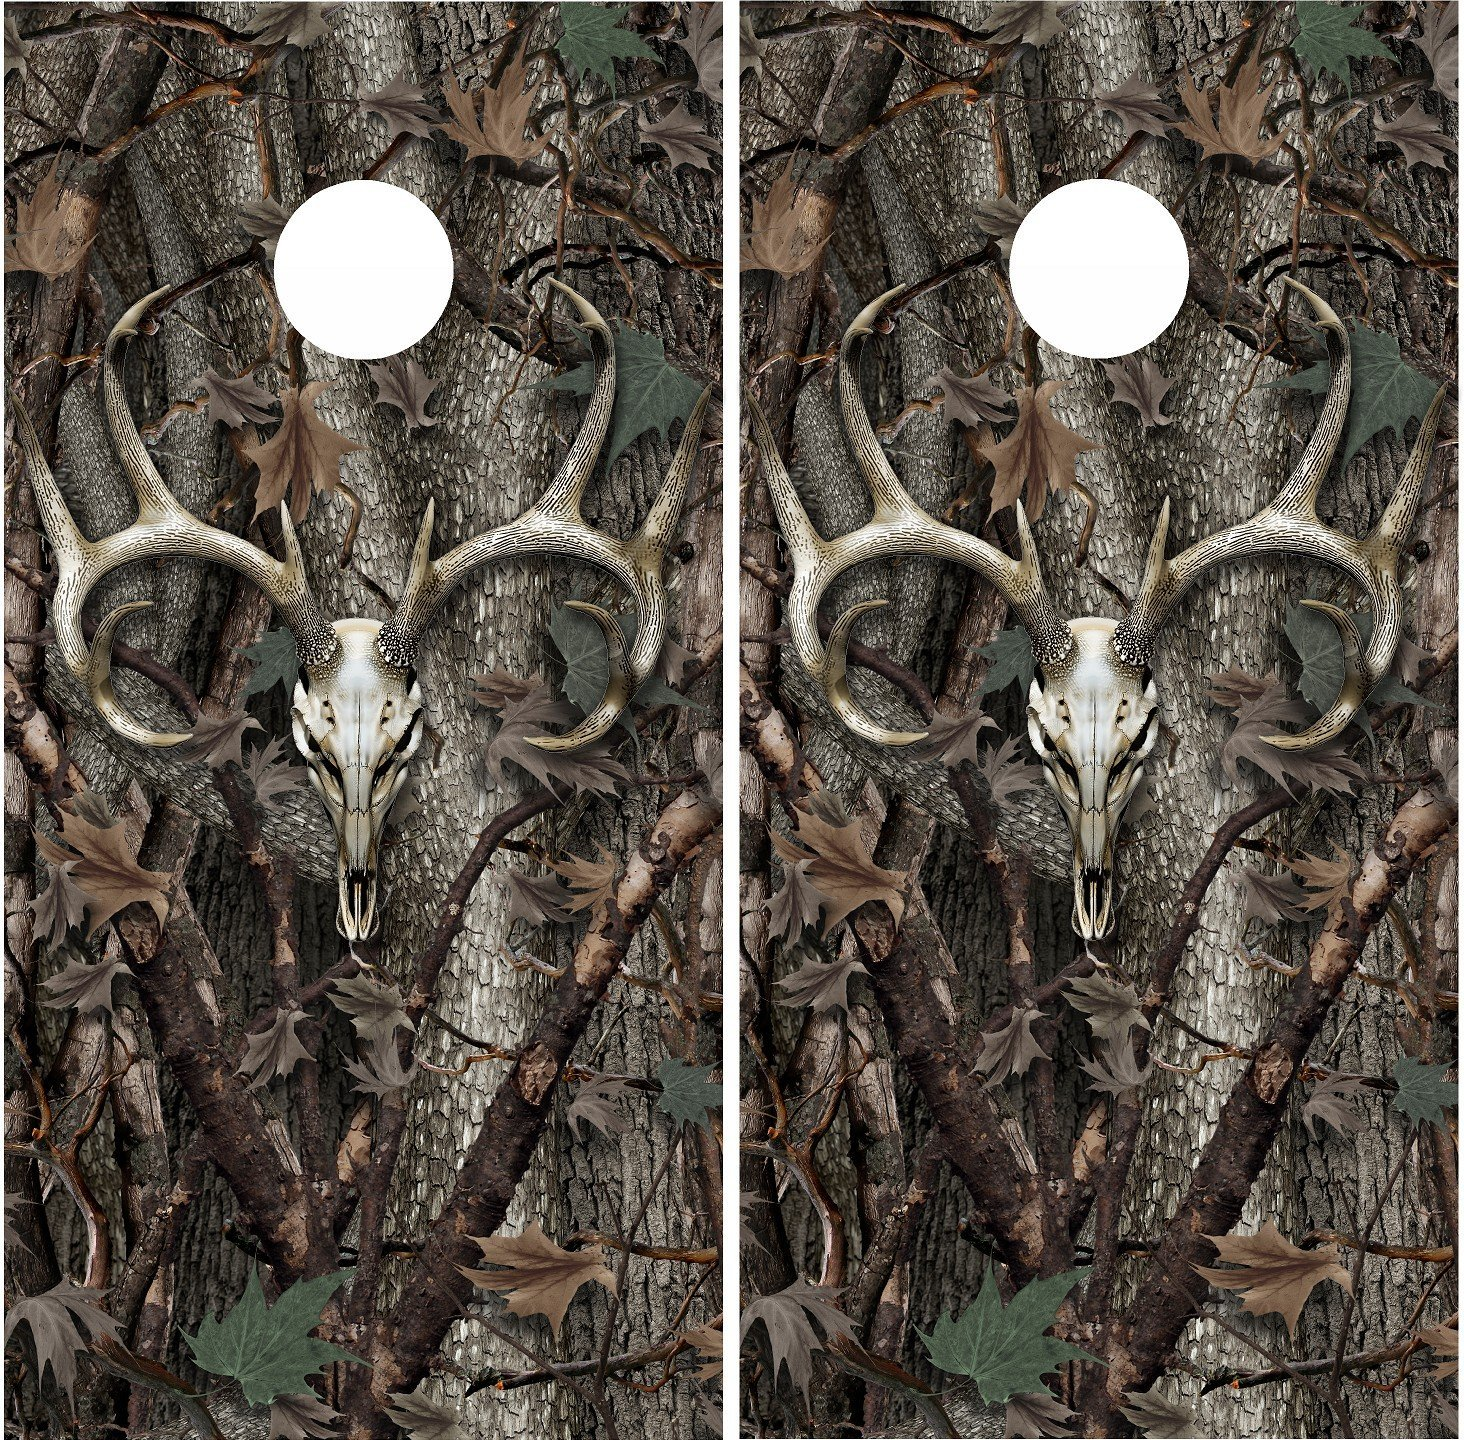 Deer skull hunting camouflage cornhole board game decal wraps